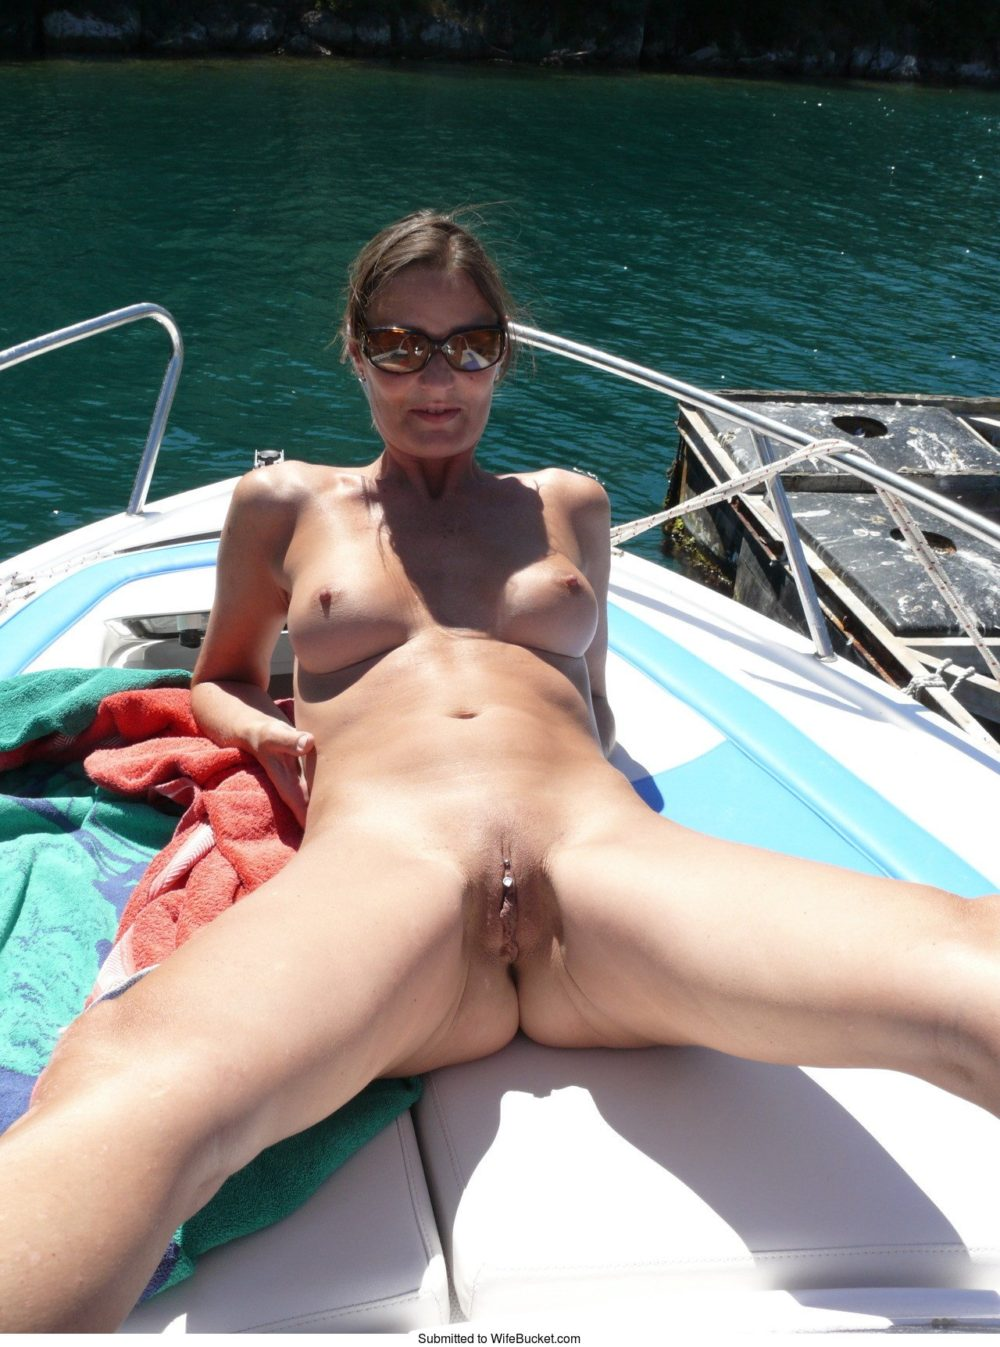 MILFs nude on boats, yachts